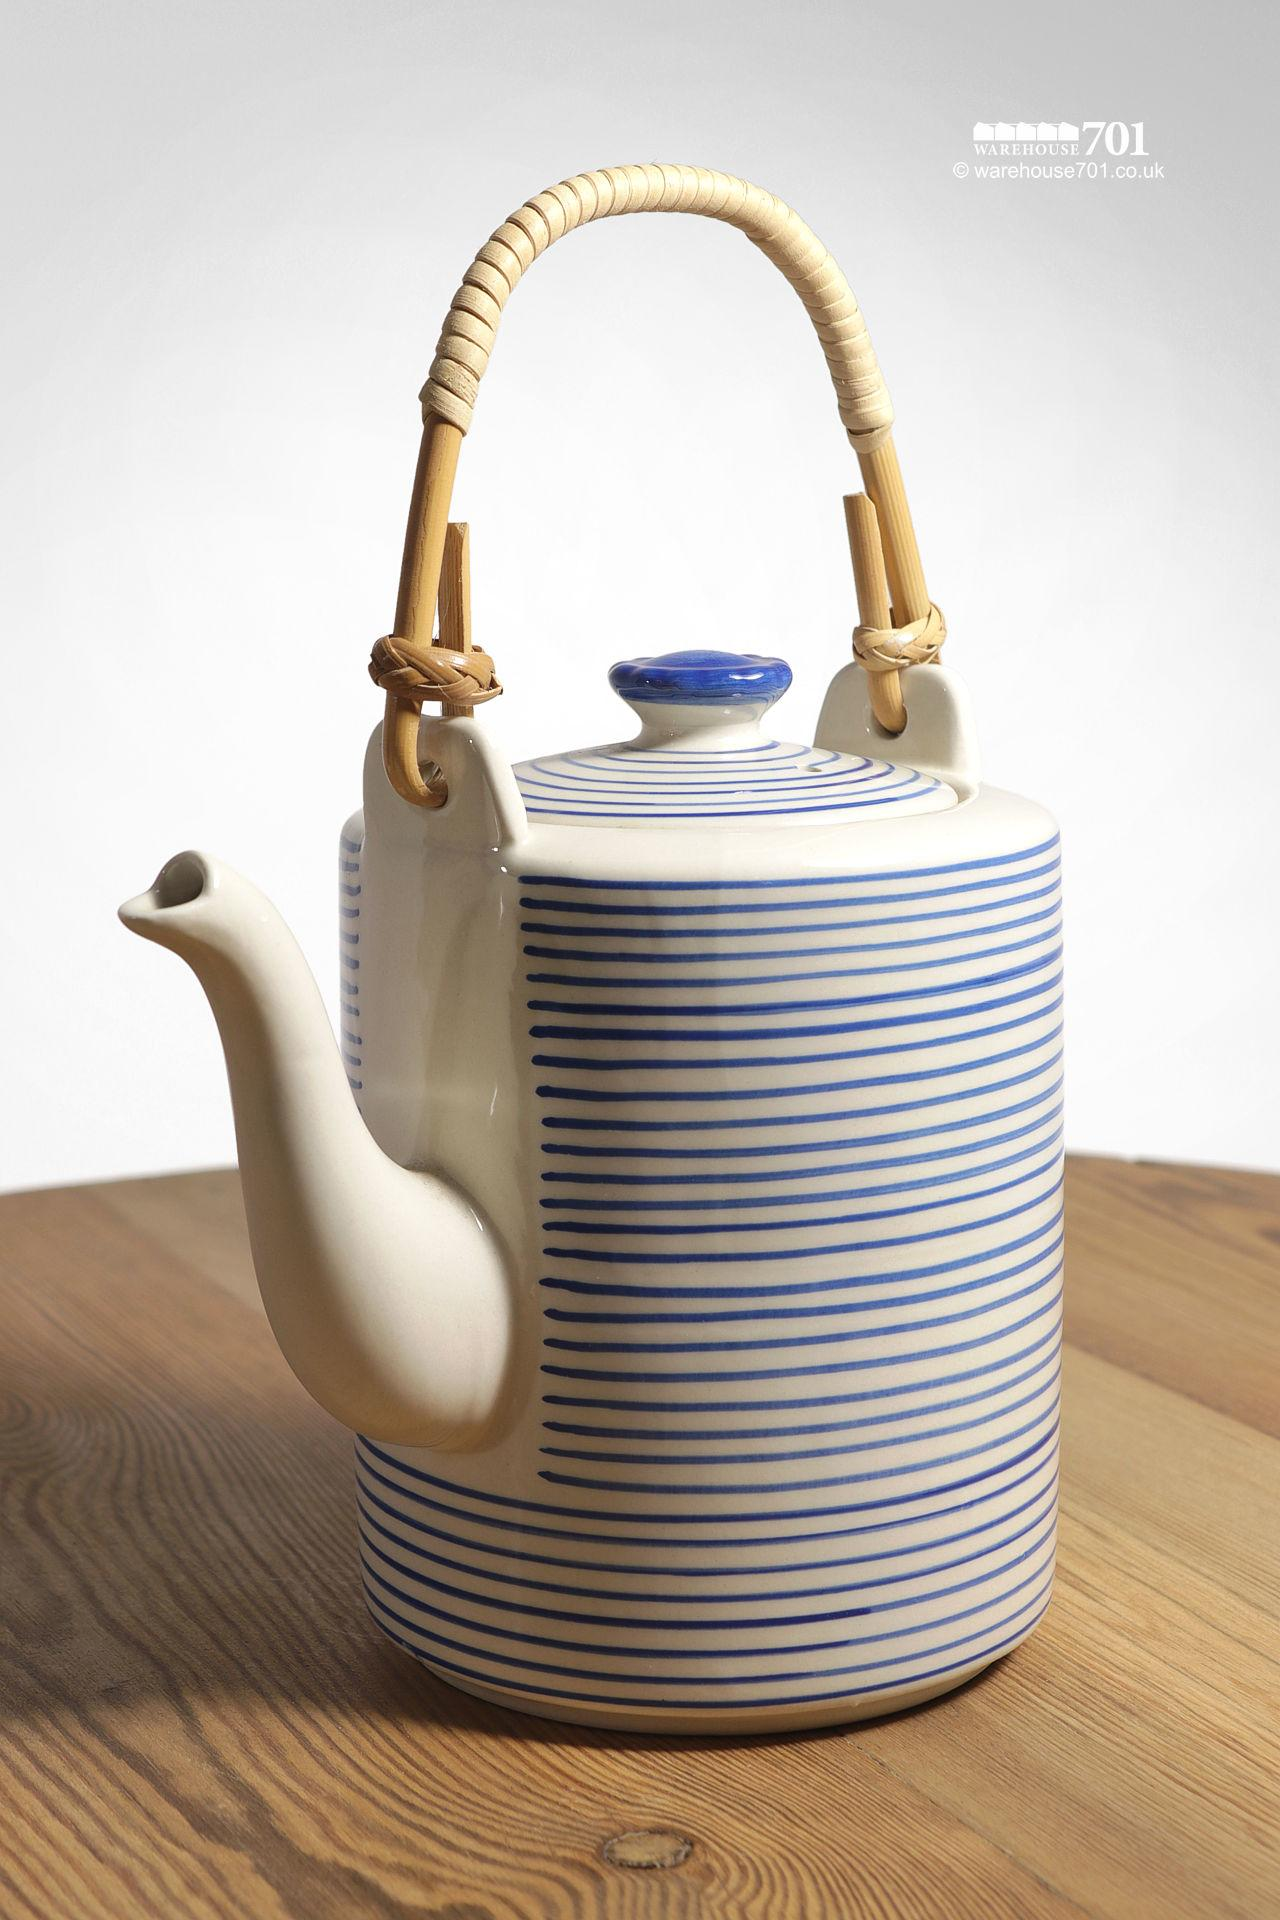 Blue and White Banded Ceramic Teapot with a Woven Bamboo Handle